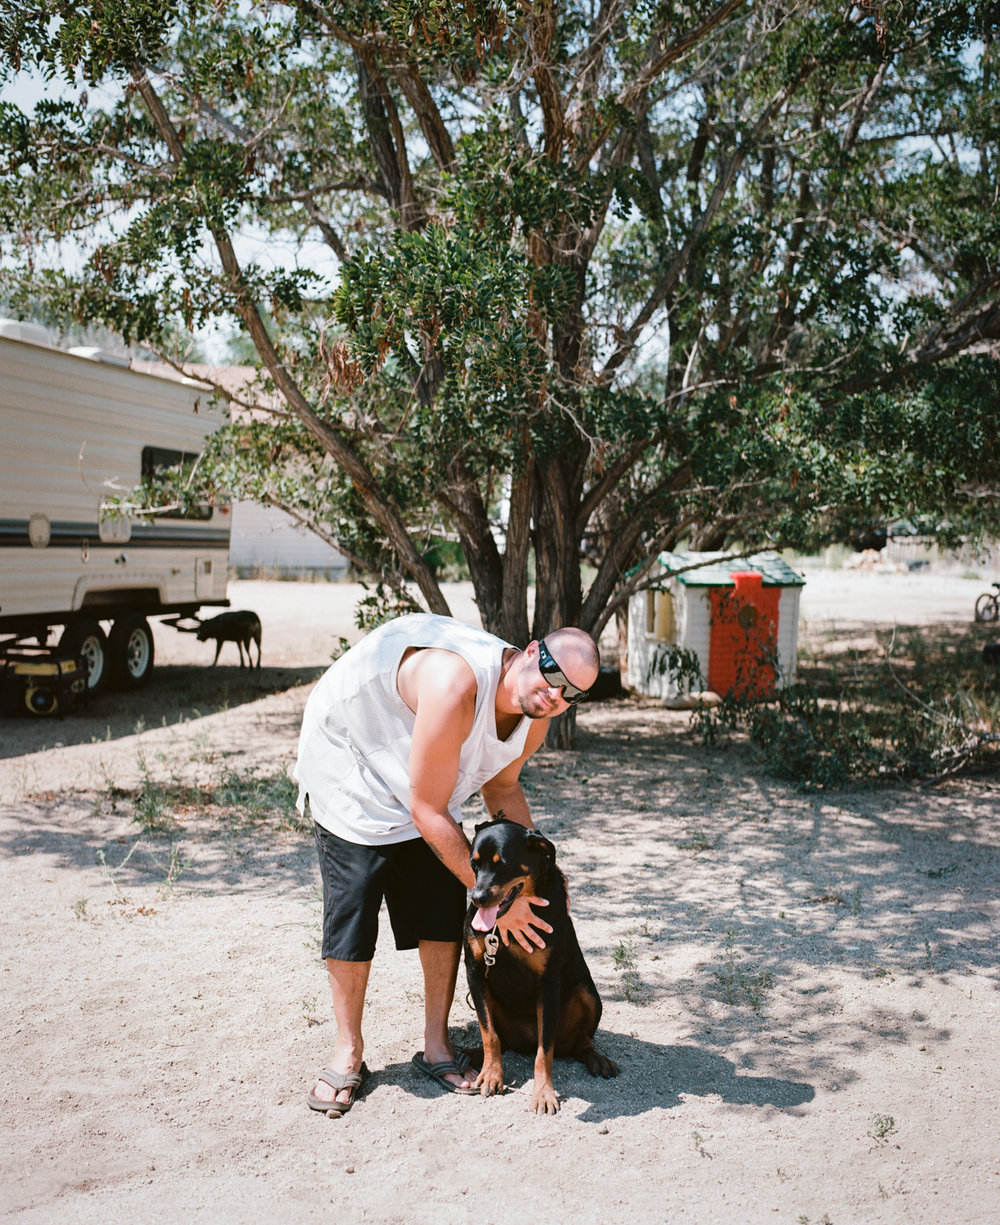 Paul and Roxie. Lone Pine, CA. August 2015.